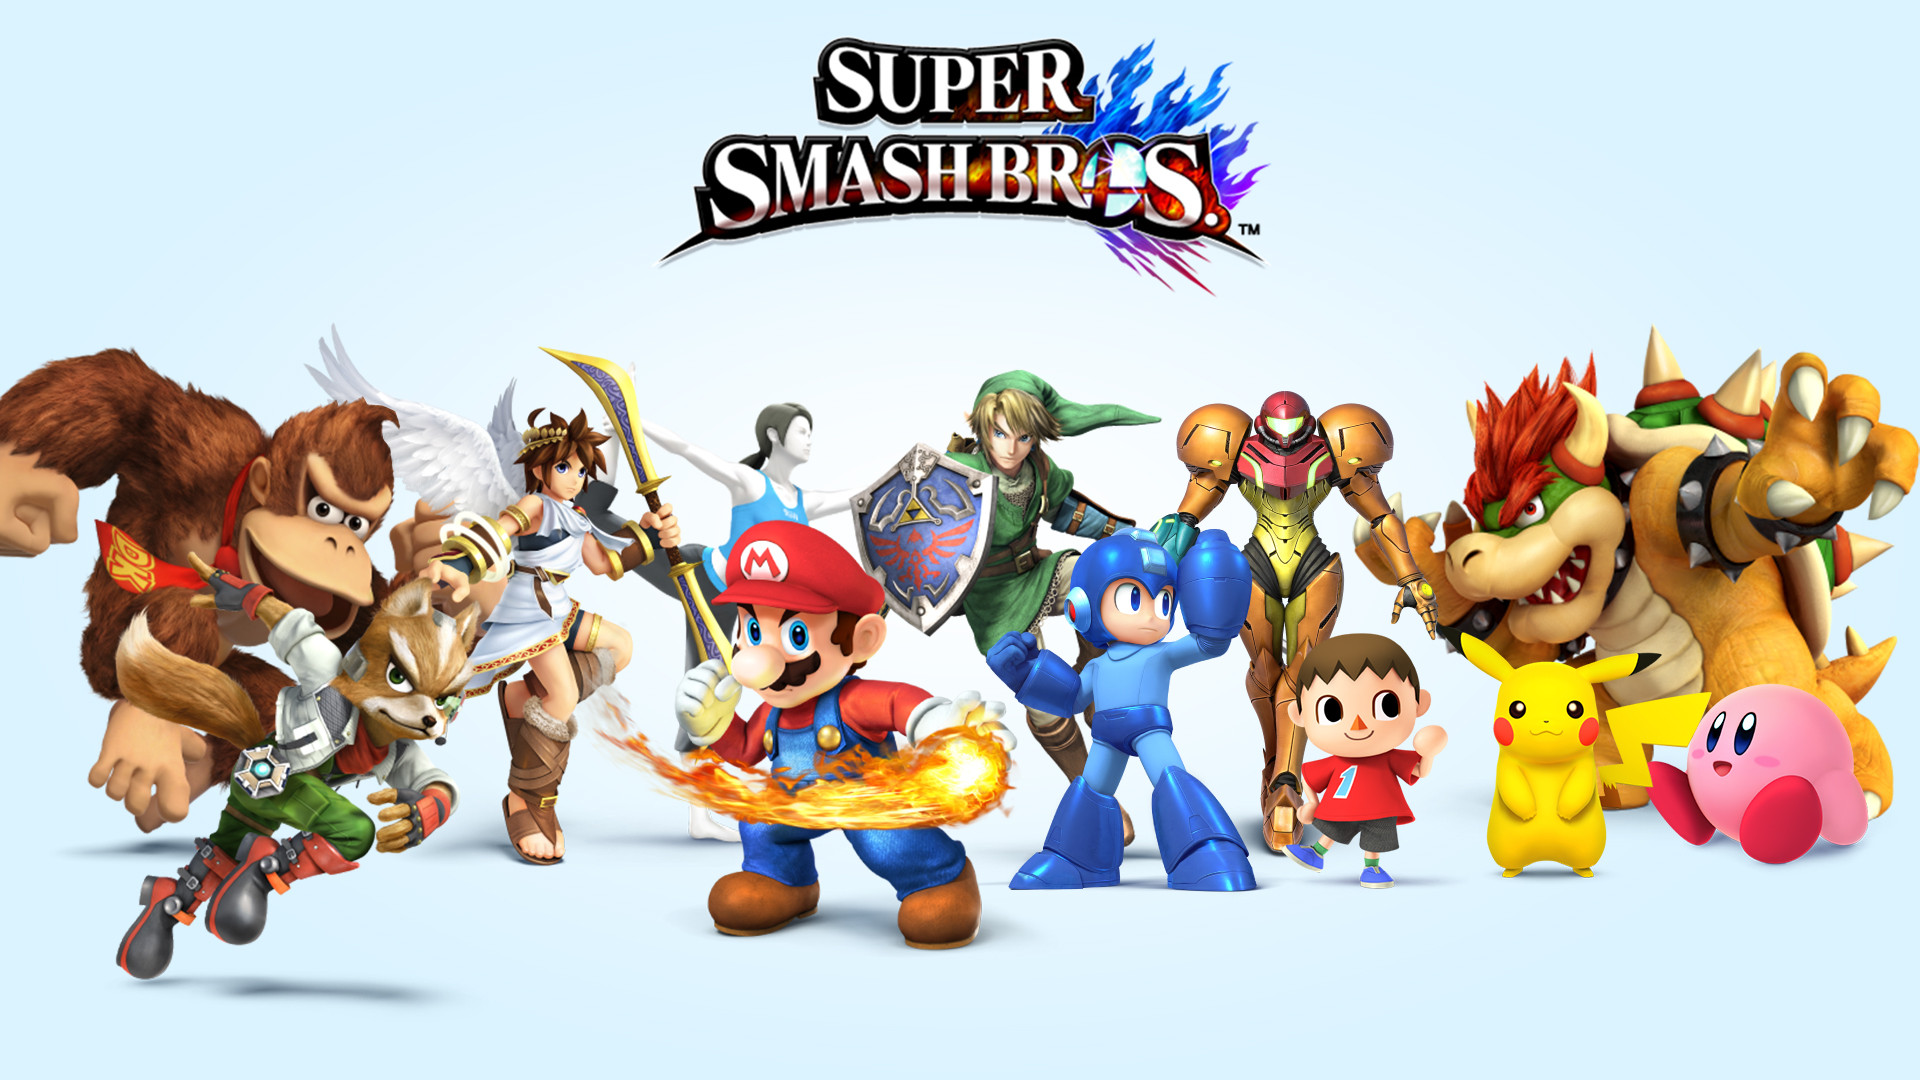 50+] Super Smash Bros Melee Wallpaper on WallpaperSafari